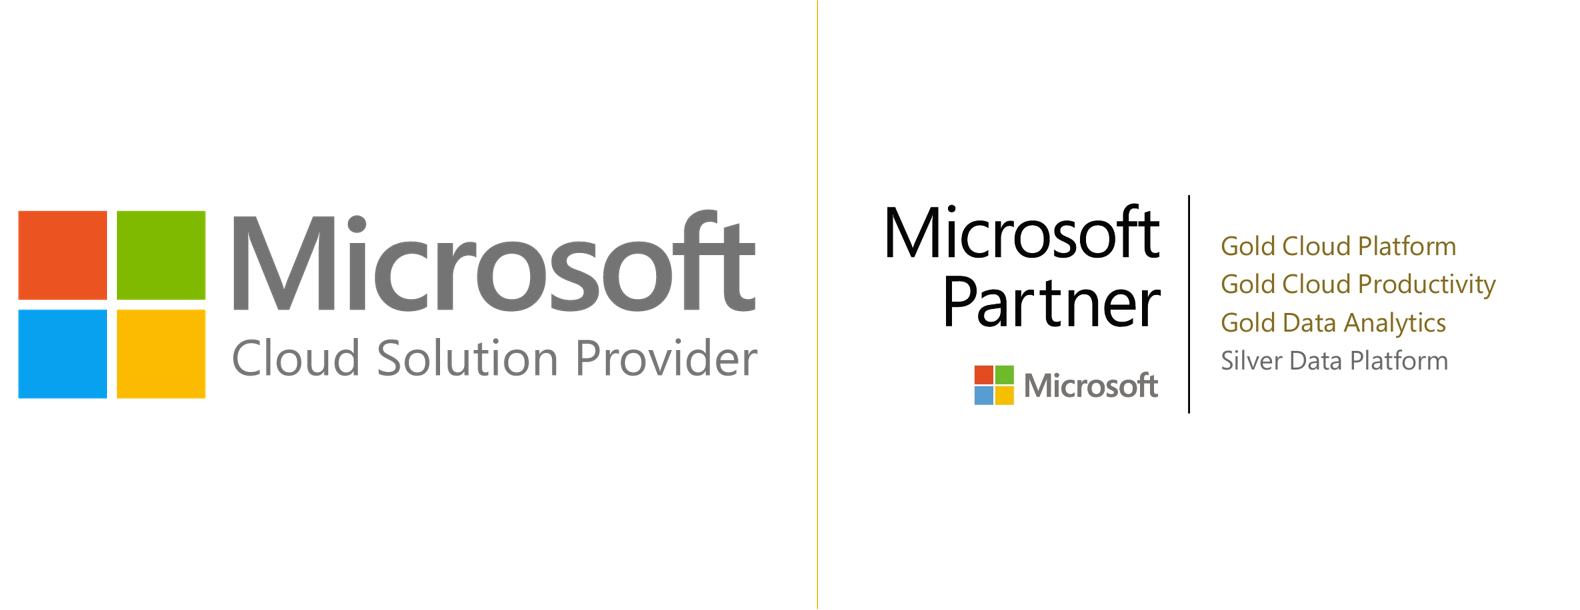 Why Purchase From A Csp Partner Rather Than Direct From Microsoft